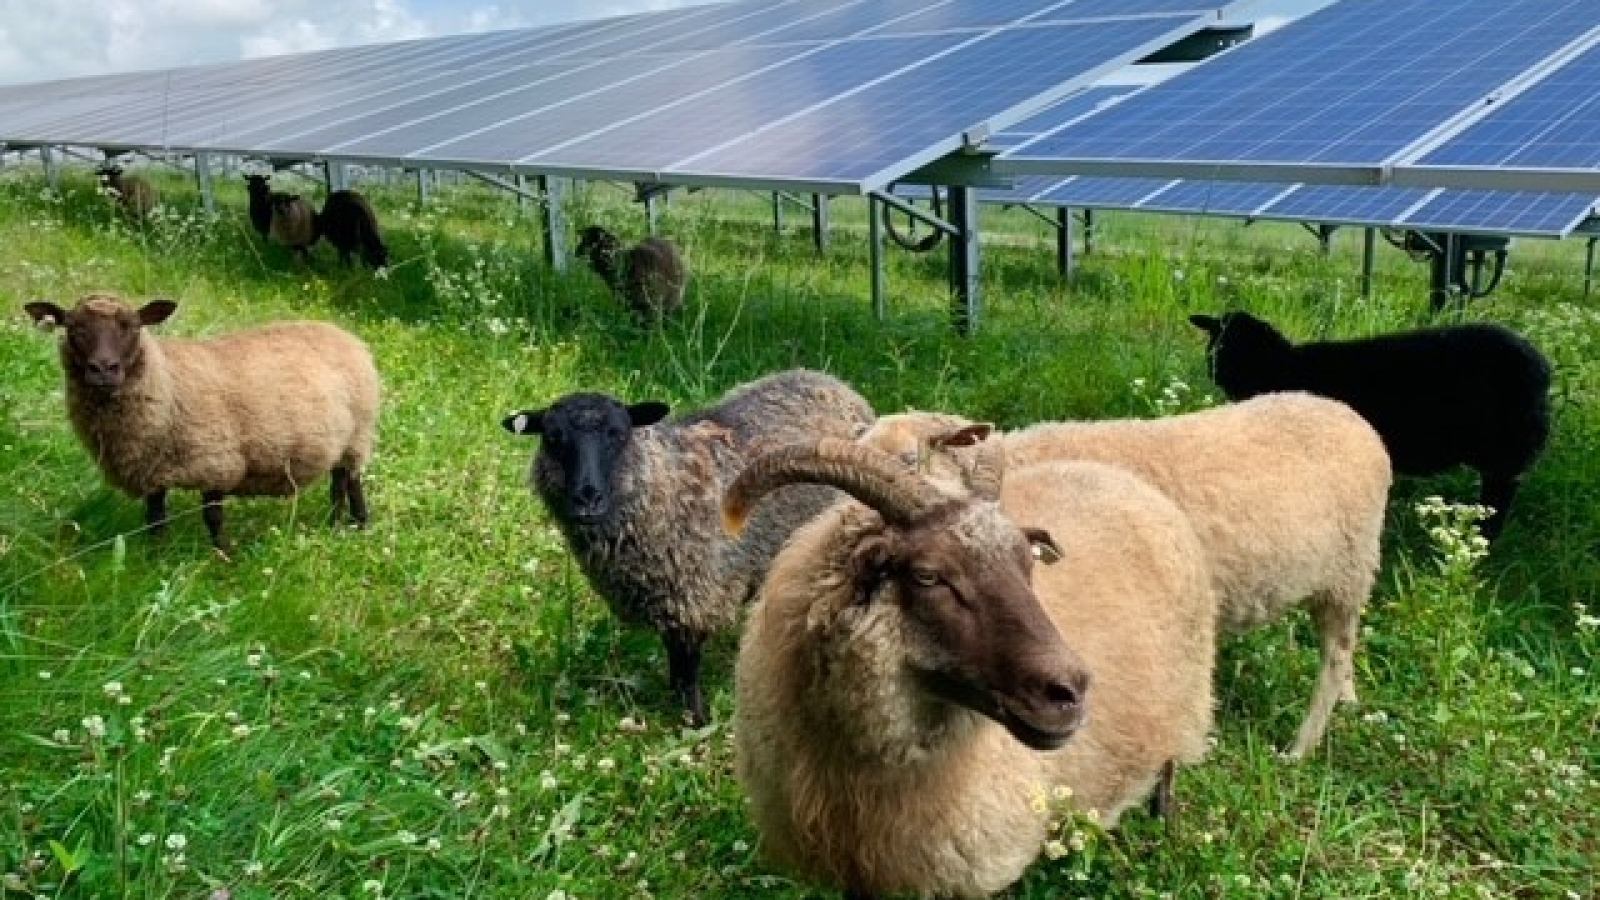 Sheep at the solar field